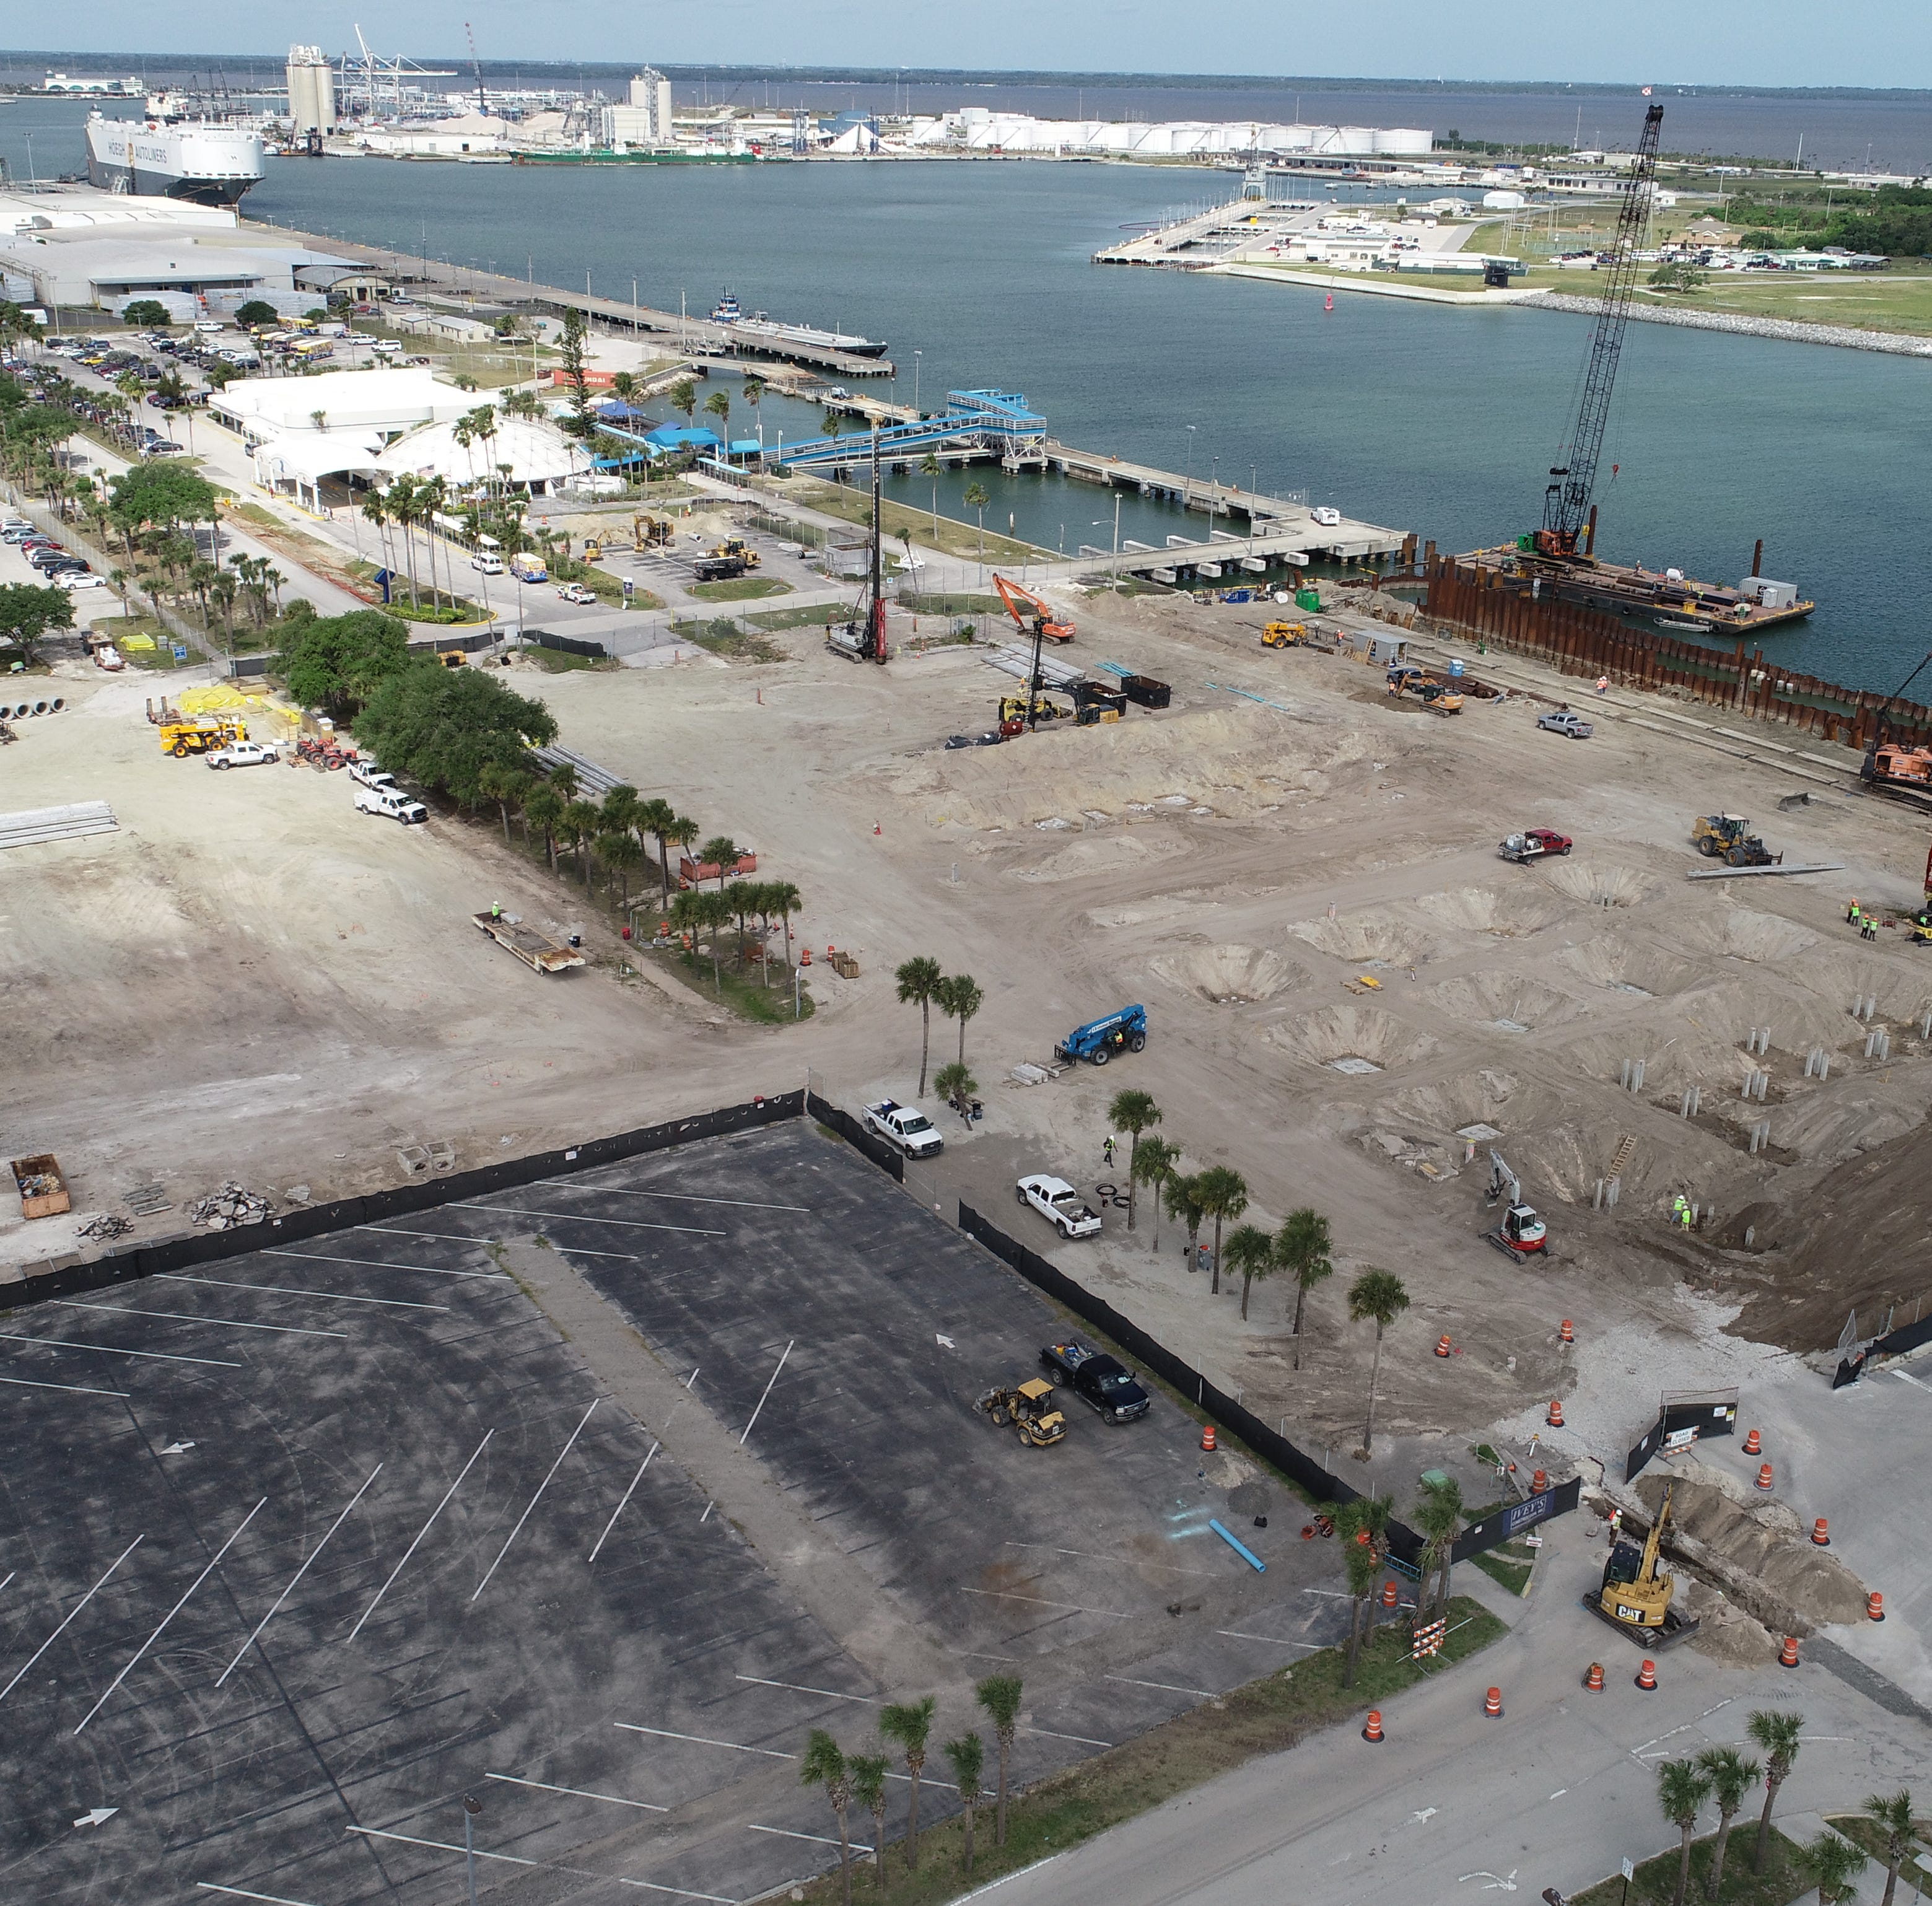 Port Canaveral commissioners OK plan to cut cost of new cruise terminal by $4.5 million